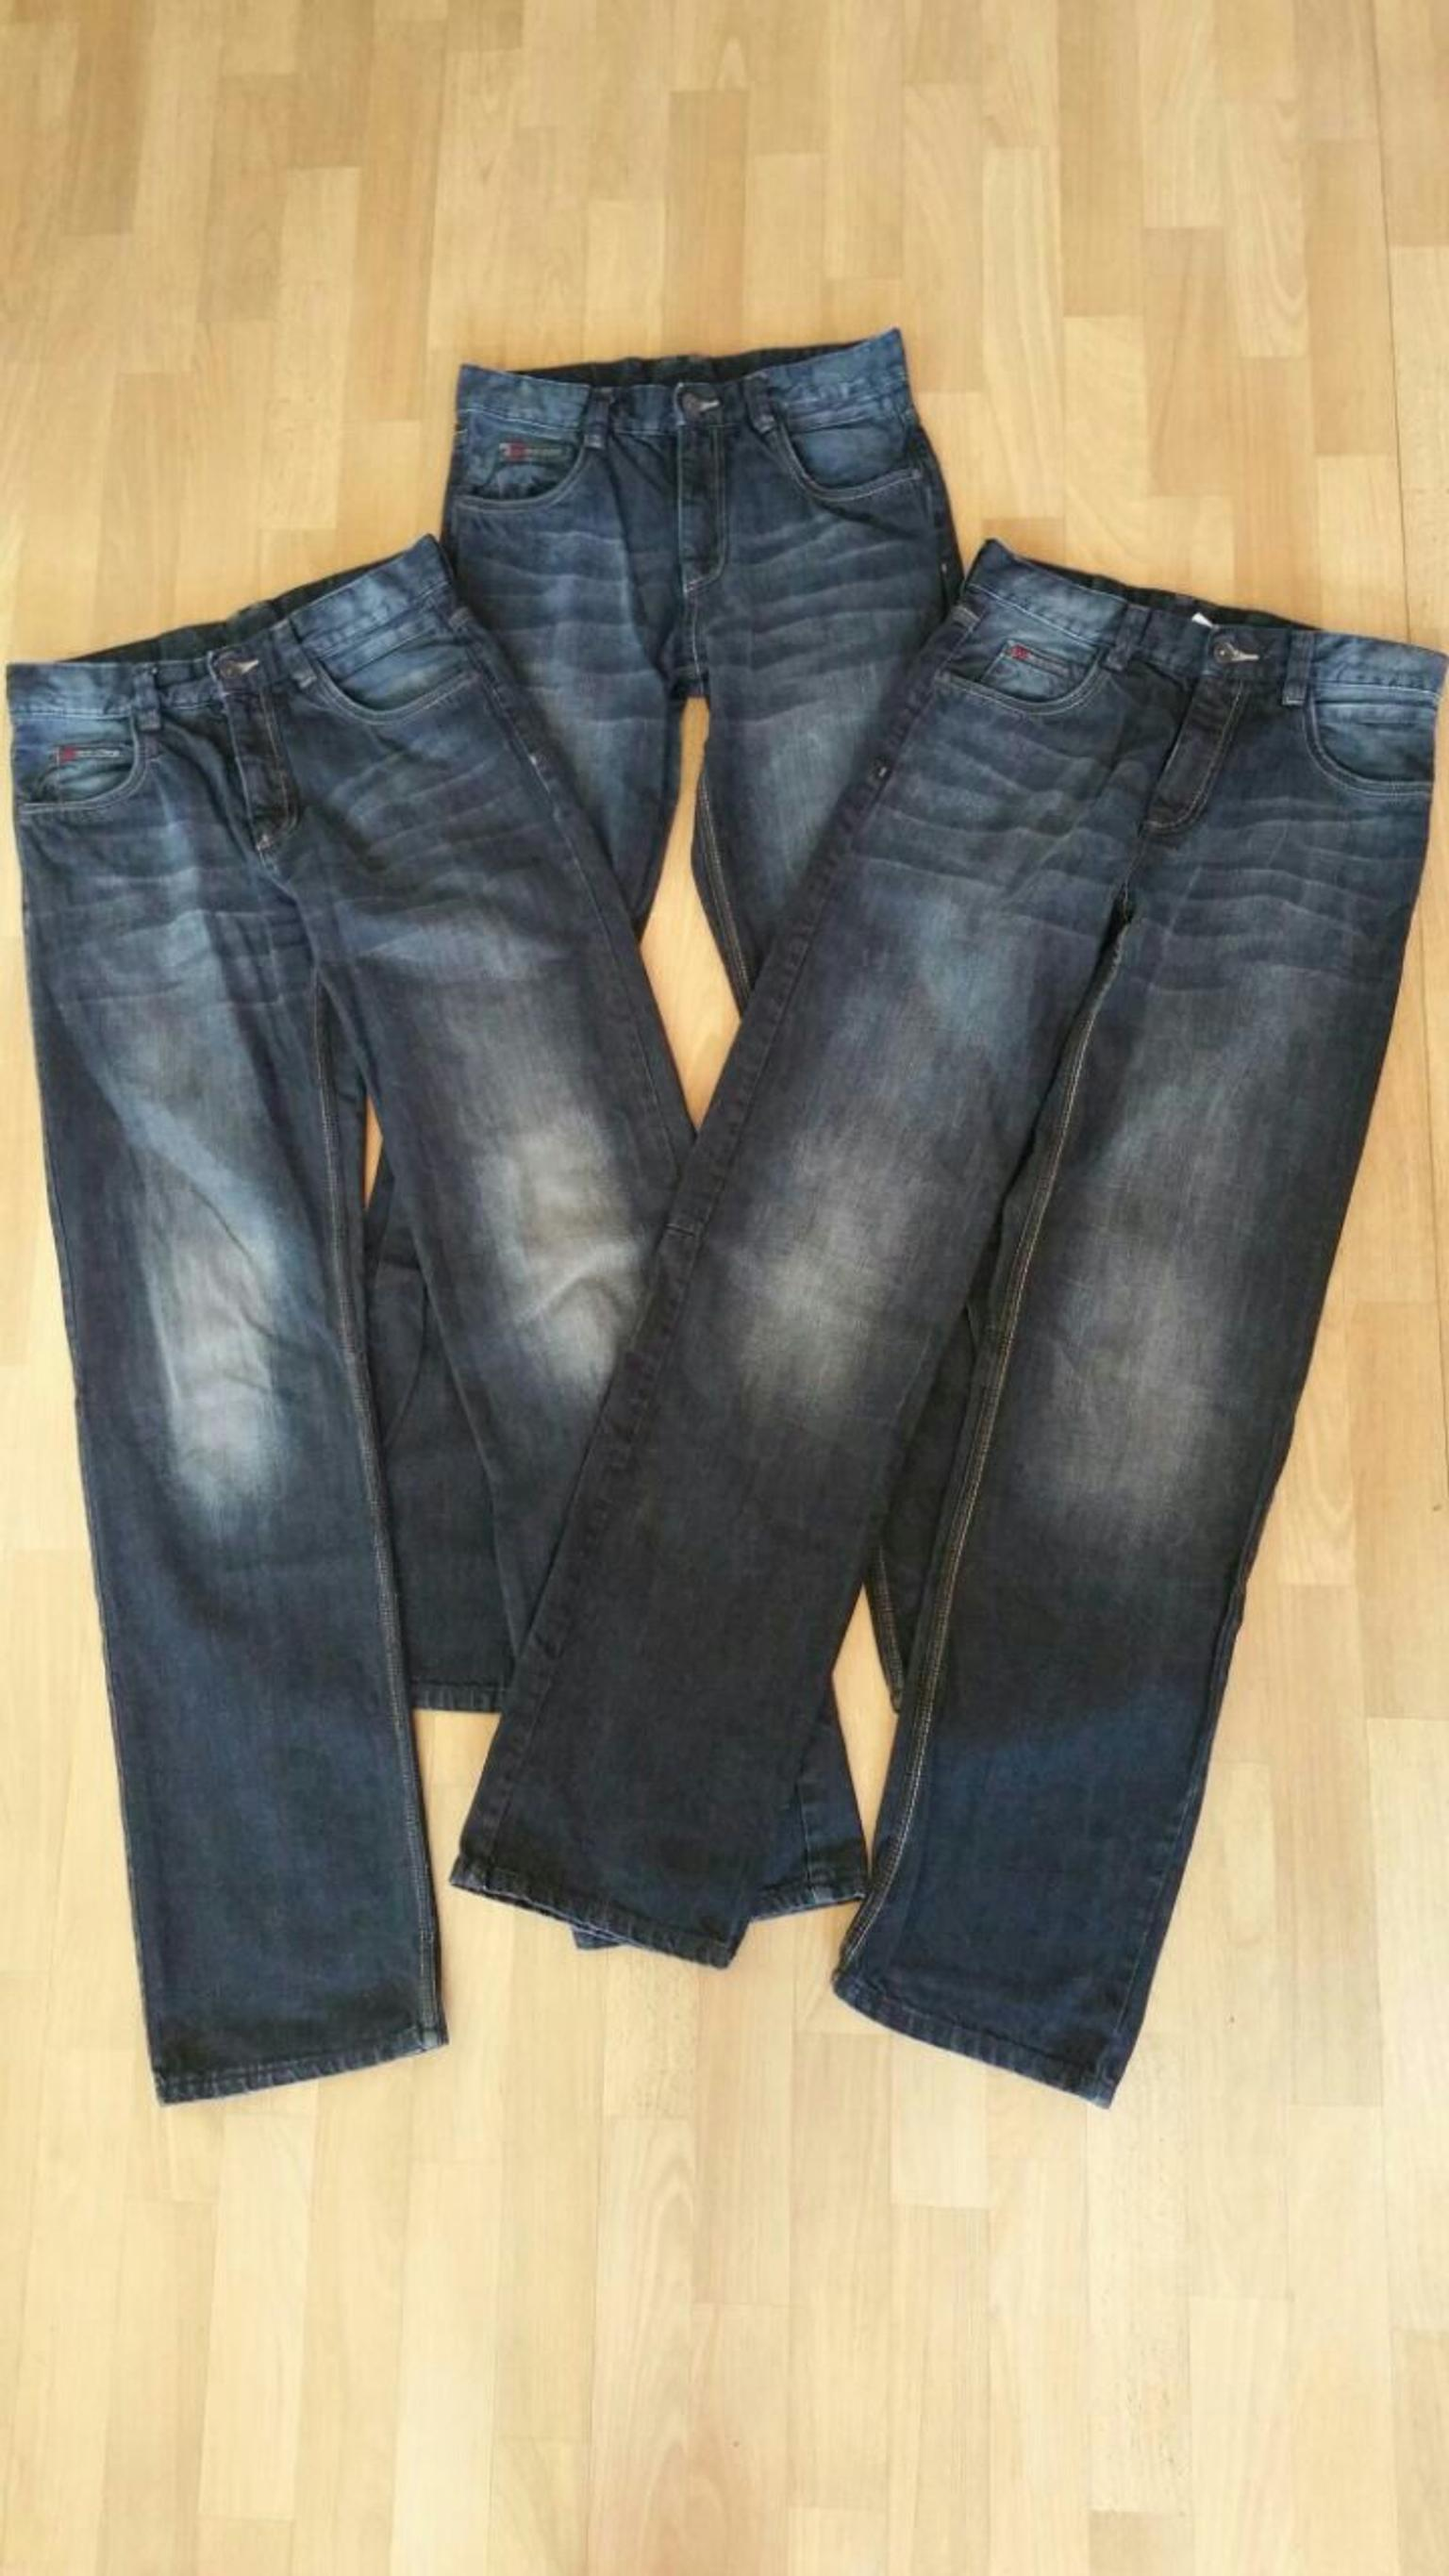 mädchen-jeans there & here c&a jeans 128 jeggings gr 164